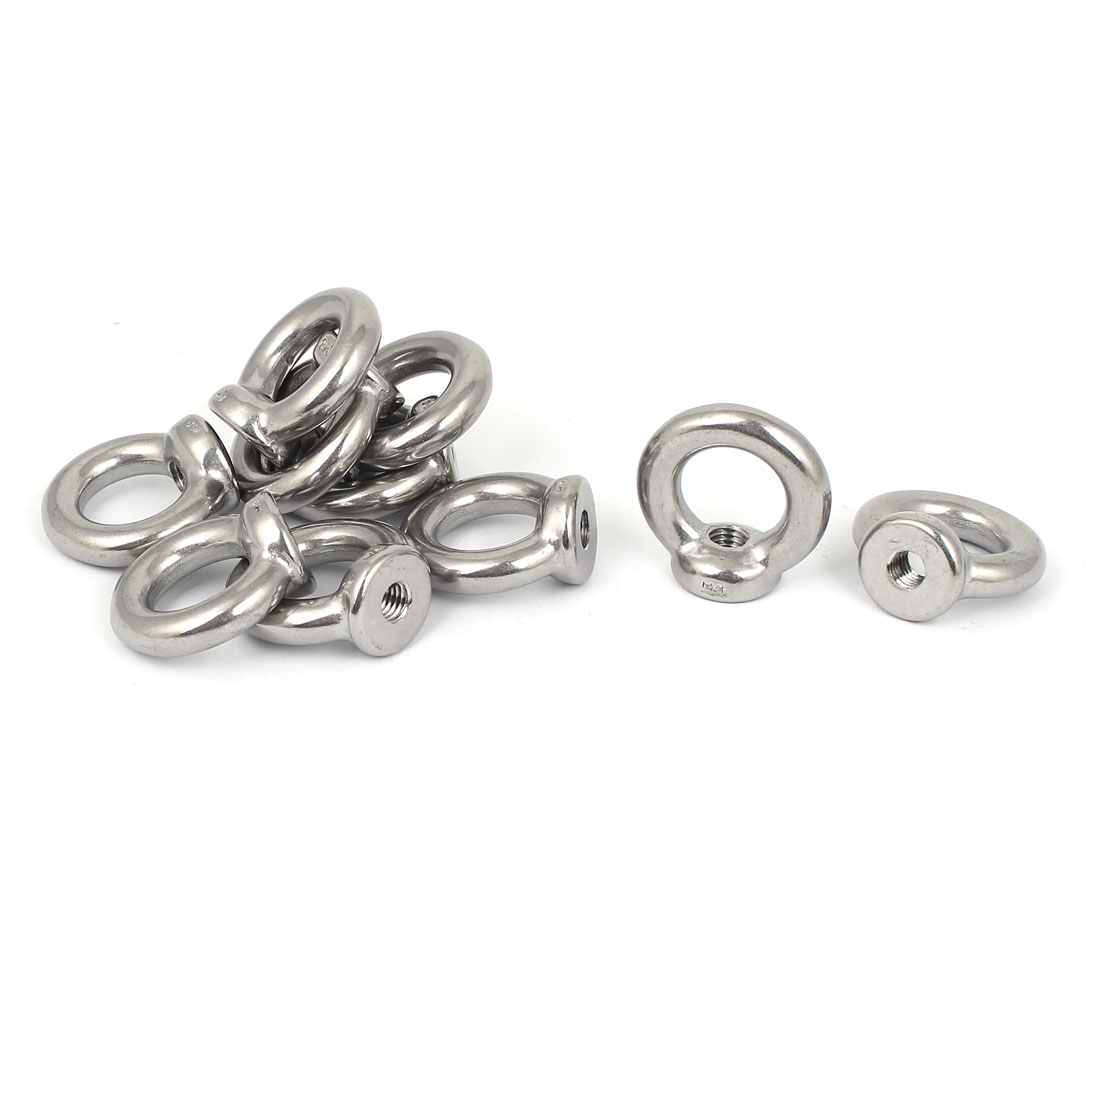 M8 Female Thread Stainless Steel Lifting Eye Nuts Ring 10 Pcs